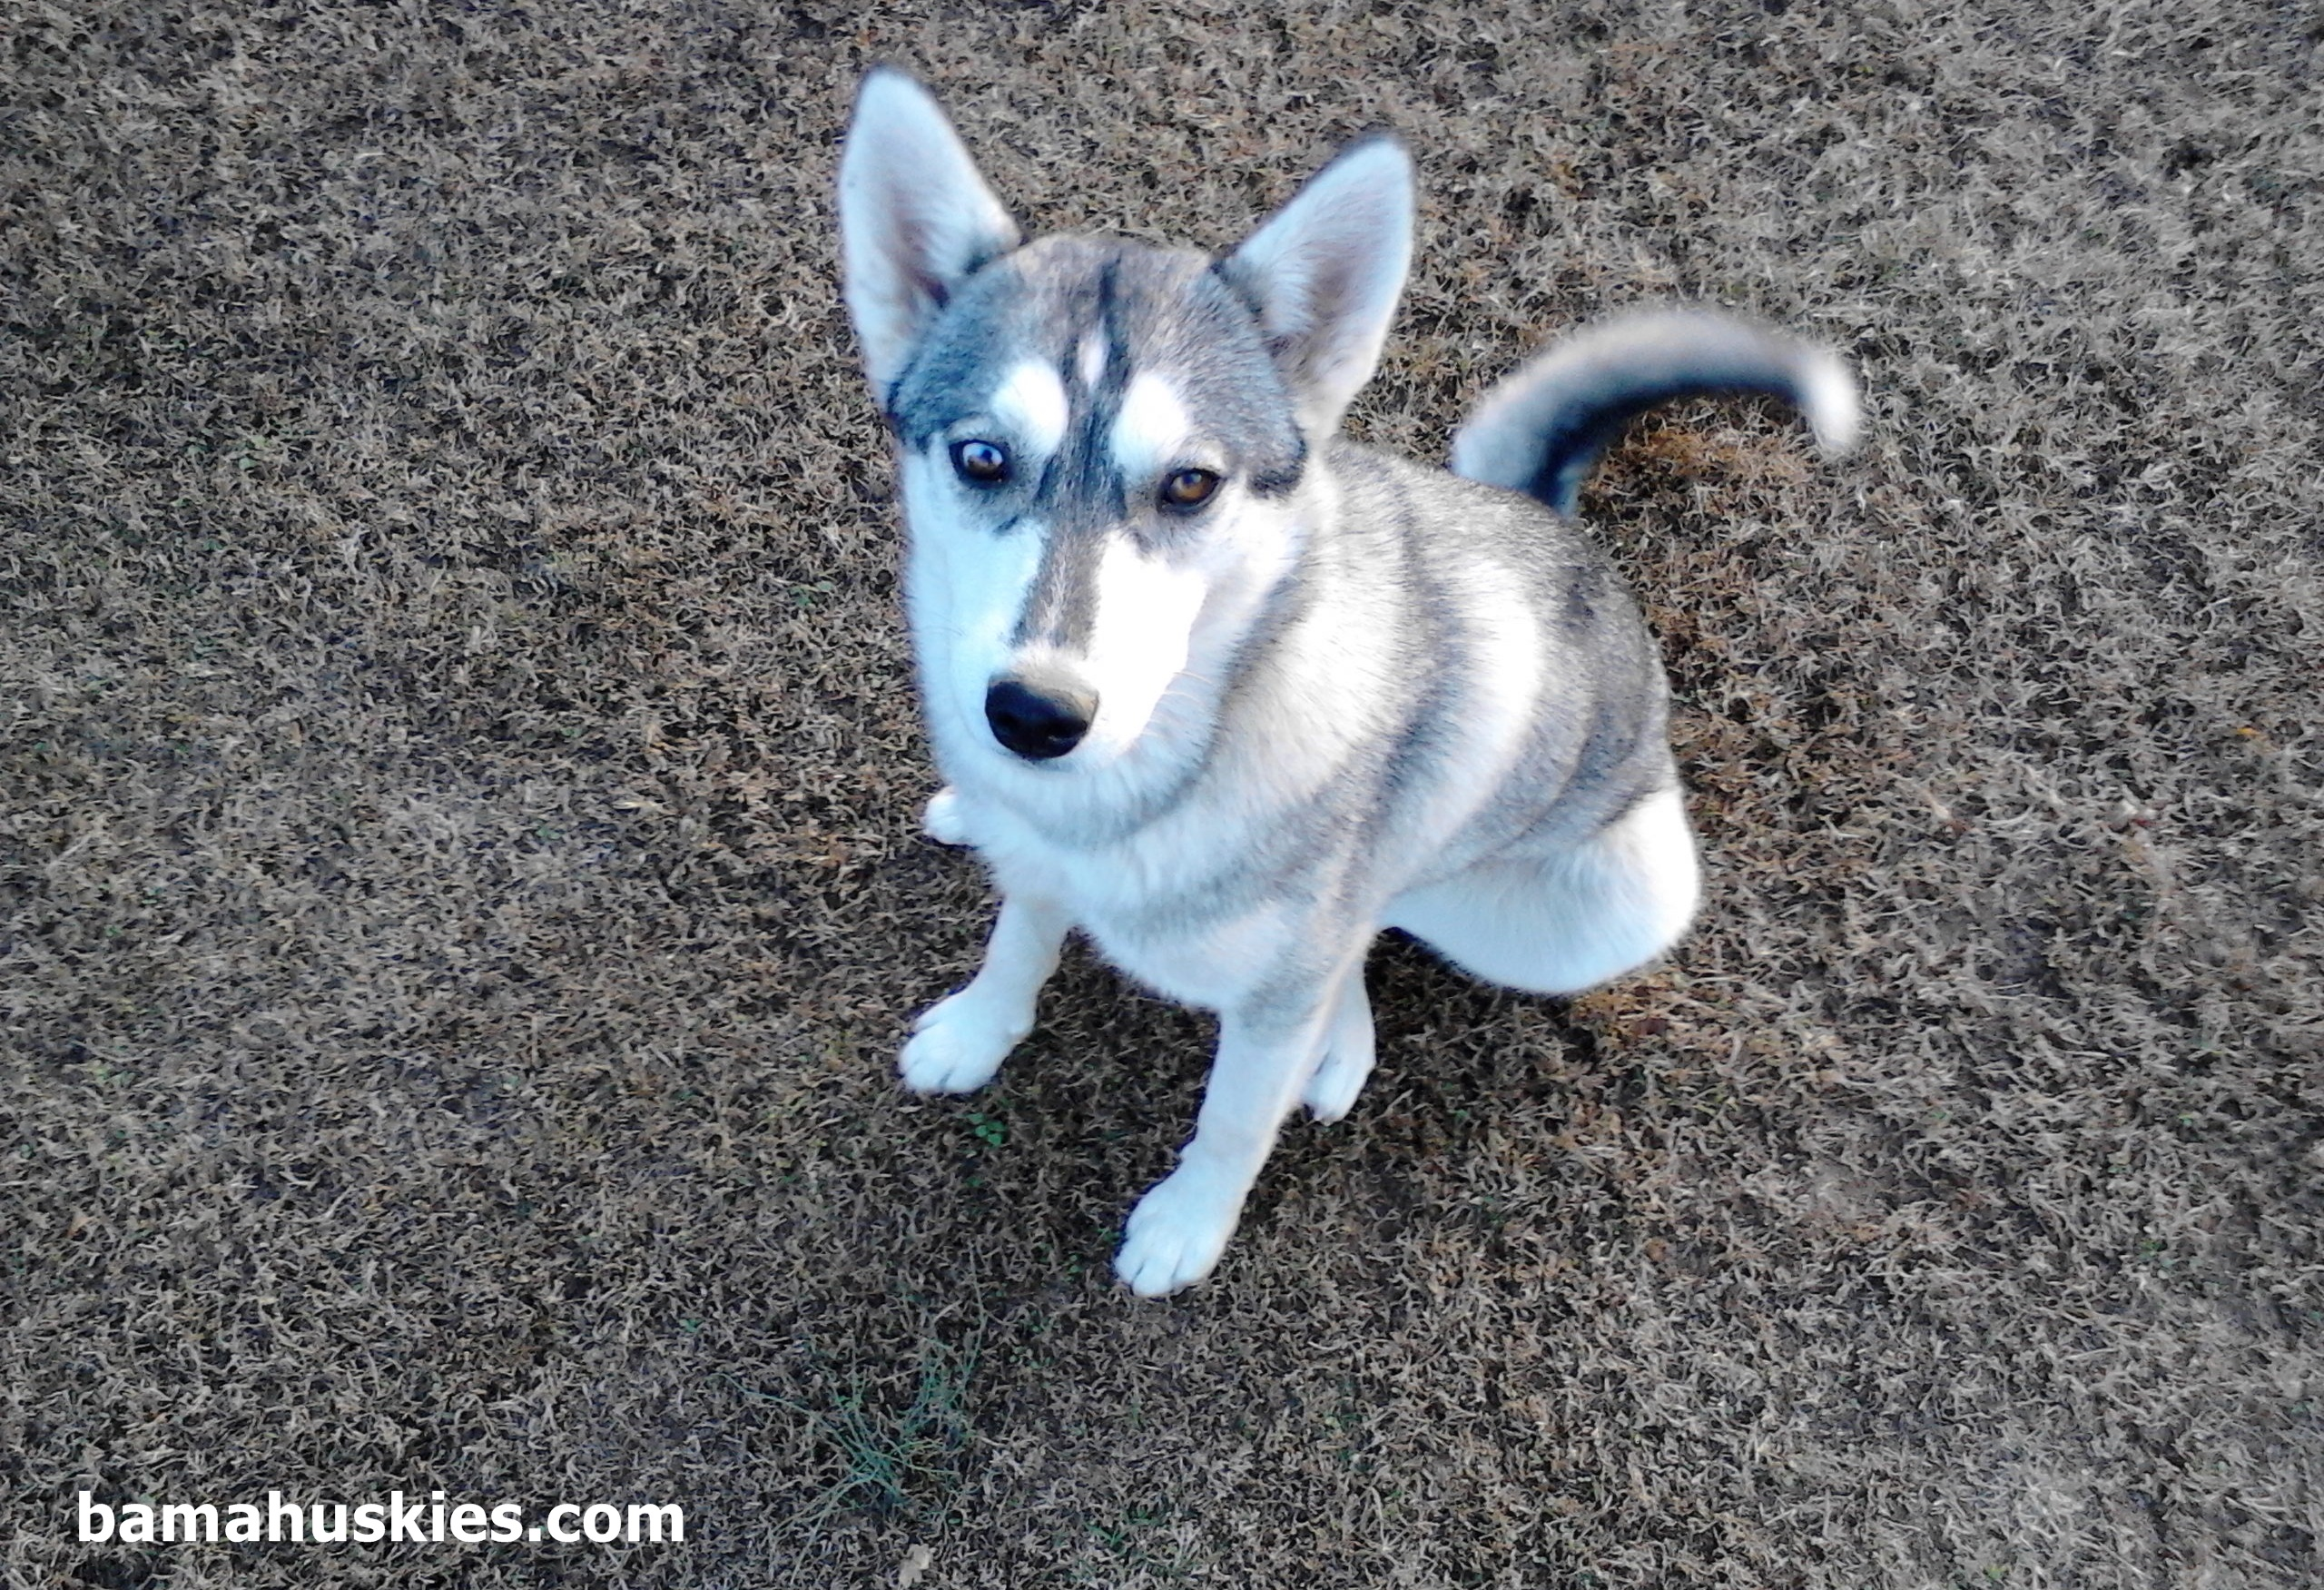 Our Husky Puppy Carley – Siberian Husky Puppies For Sale